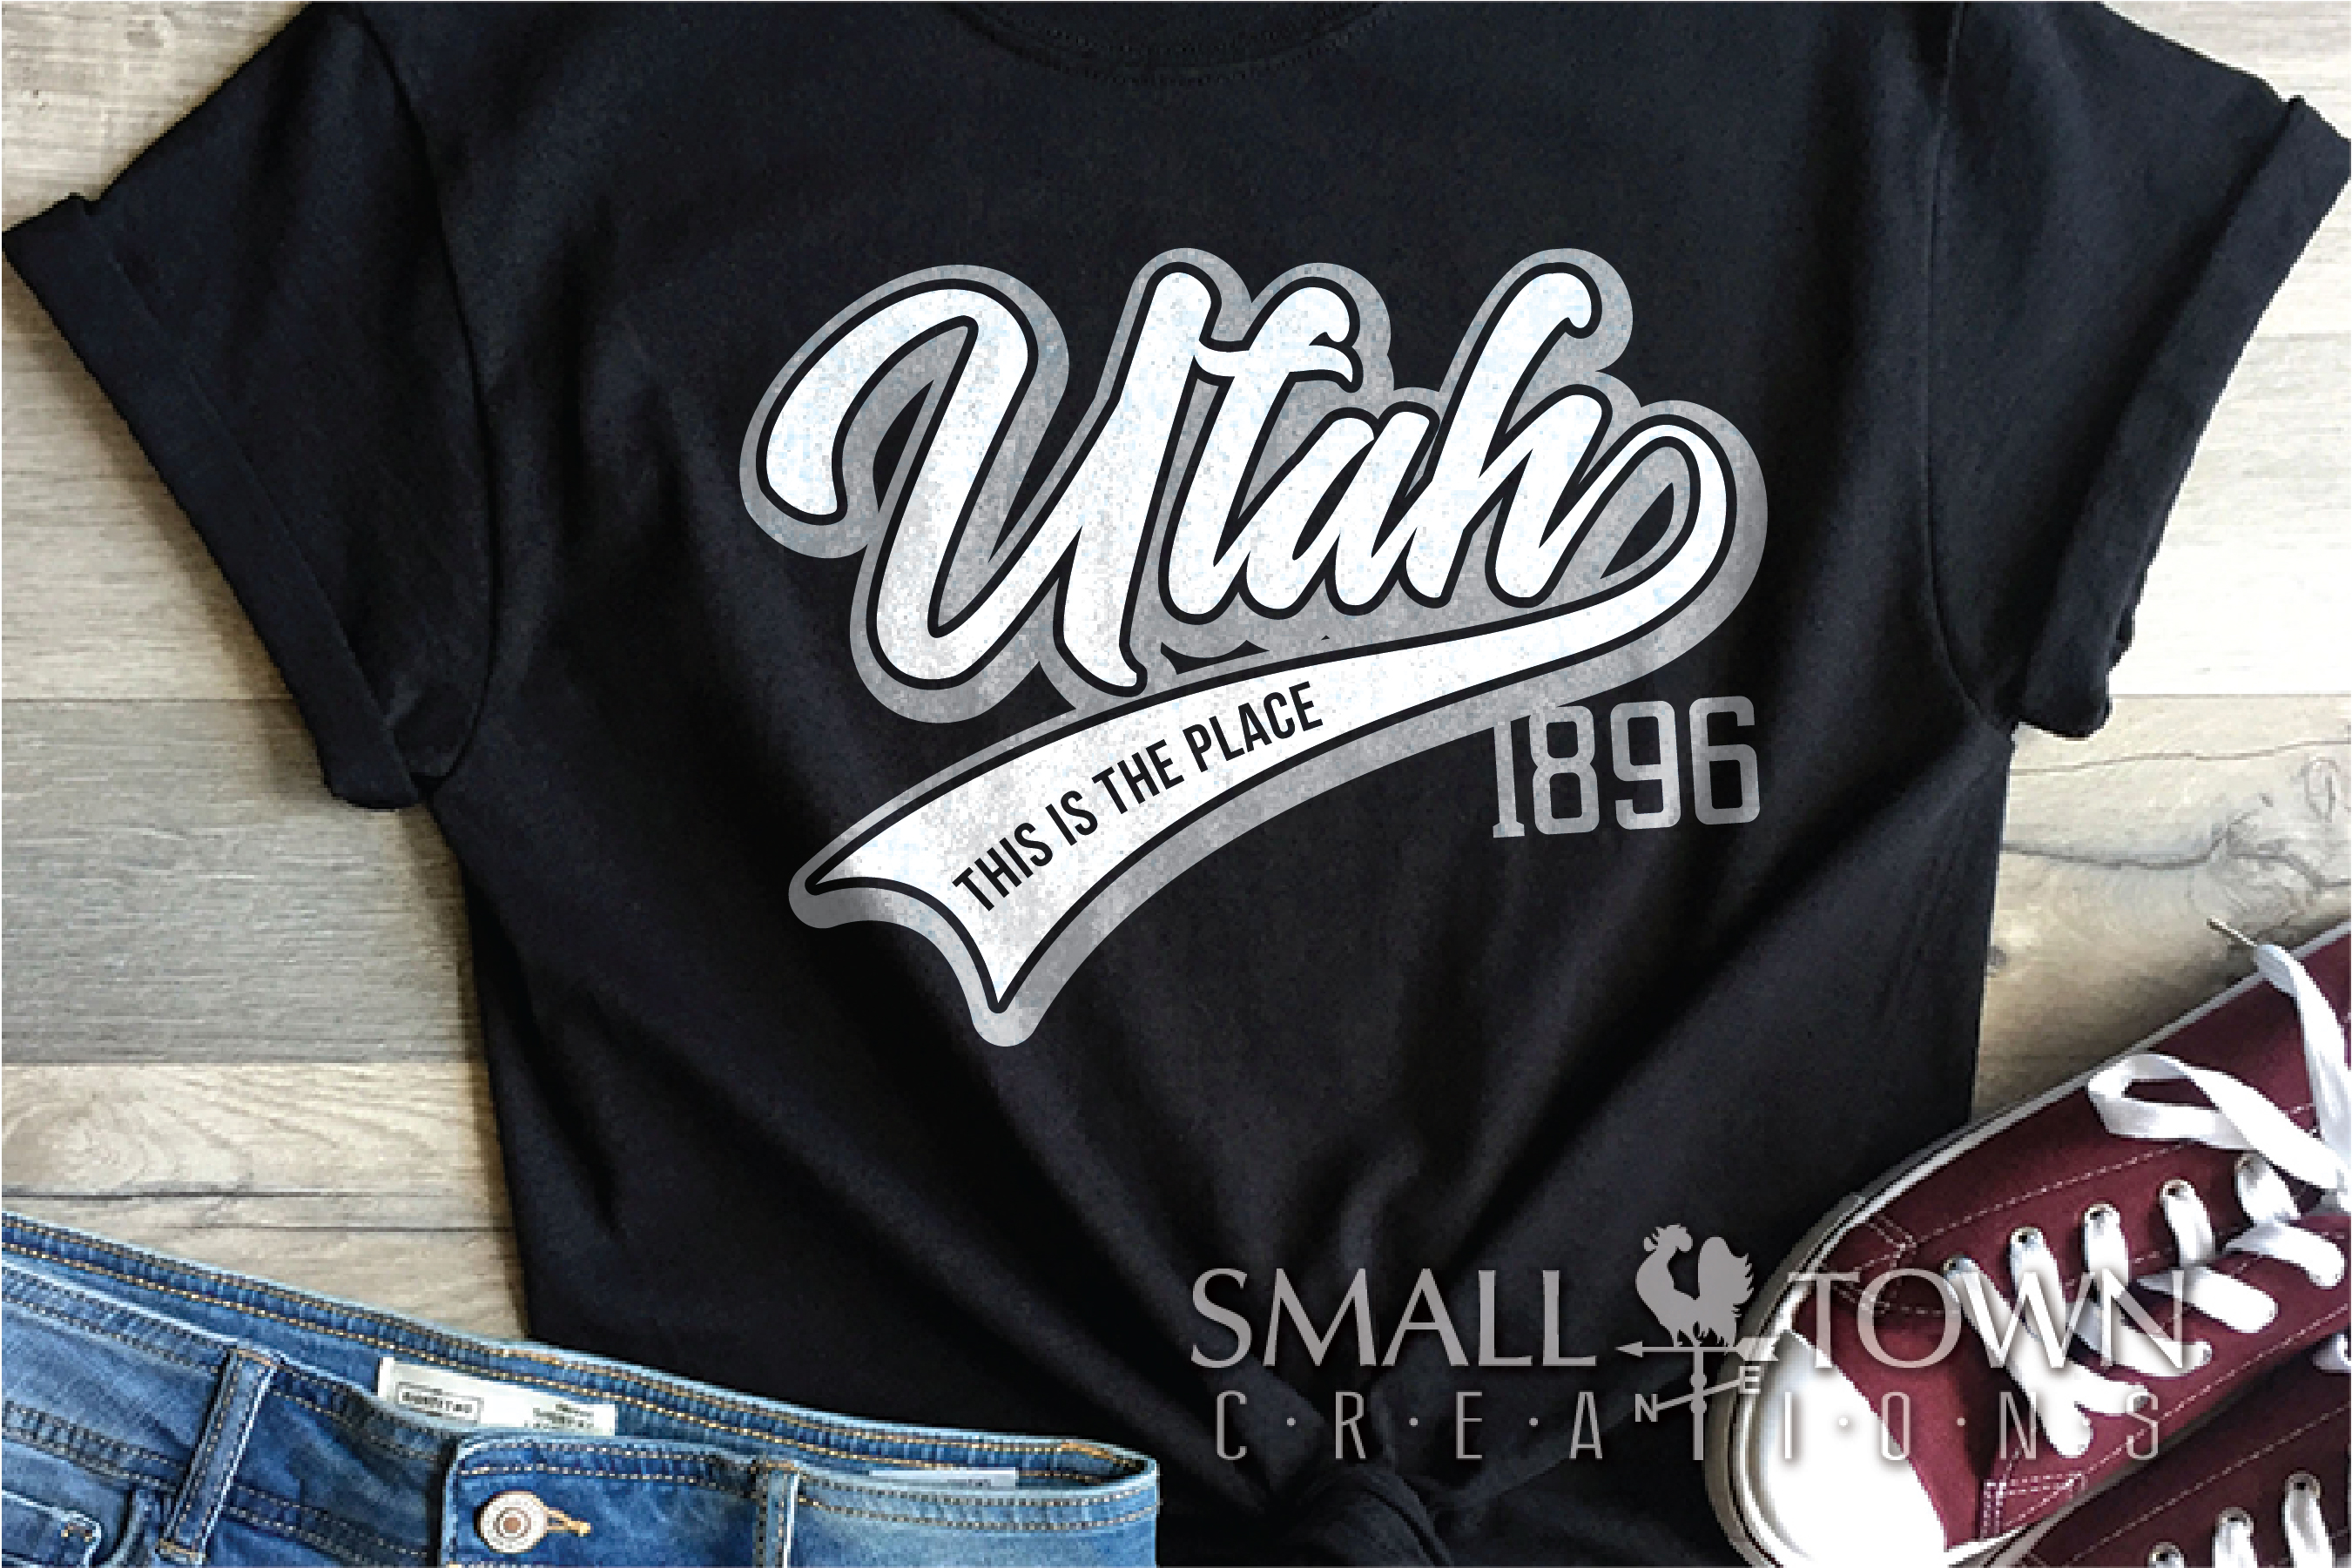 Utah,This is the Place - slogan, PRINT, CUT & DESIGN example image 2